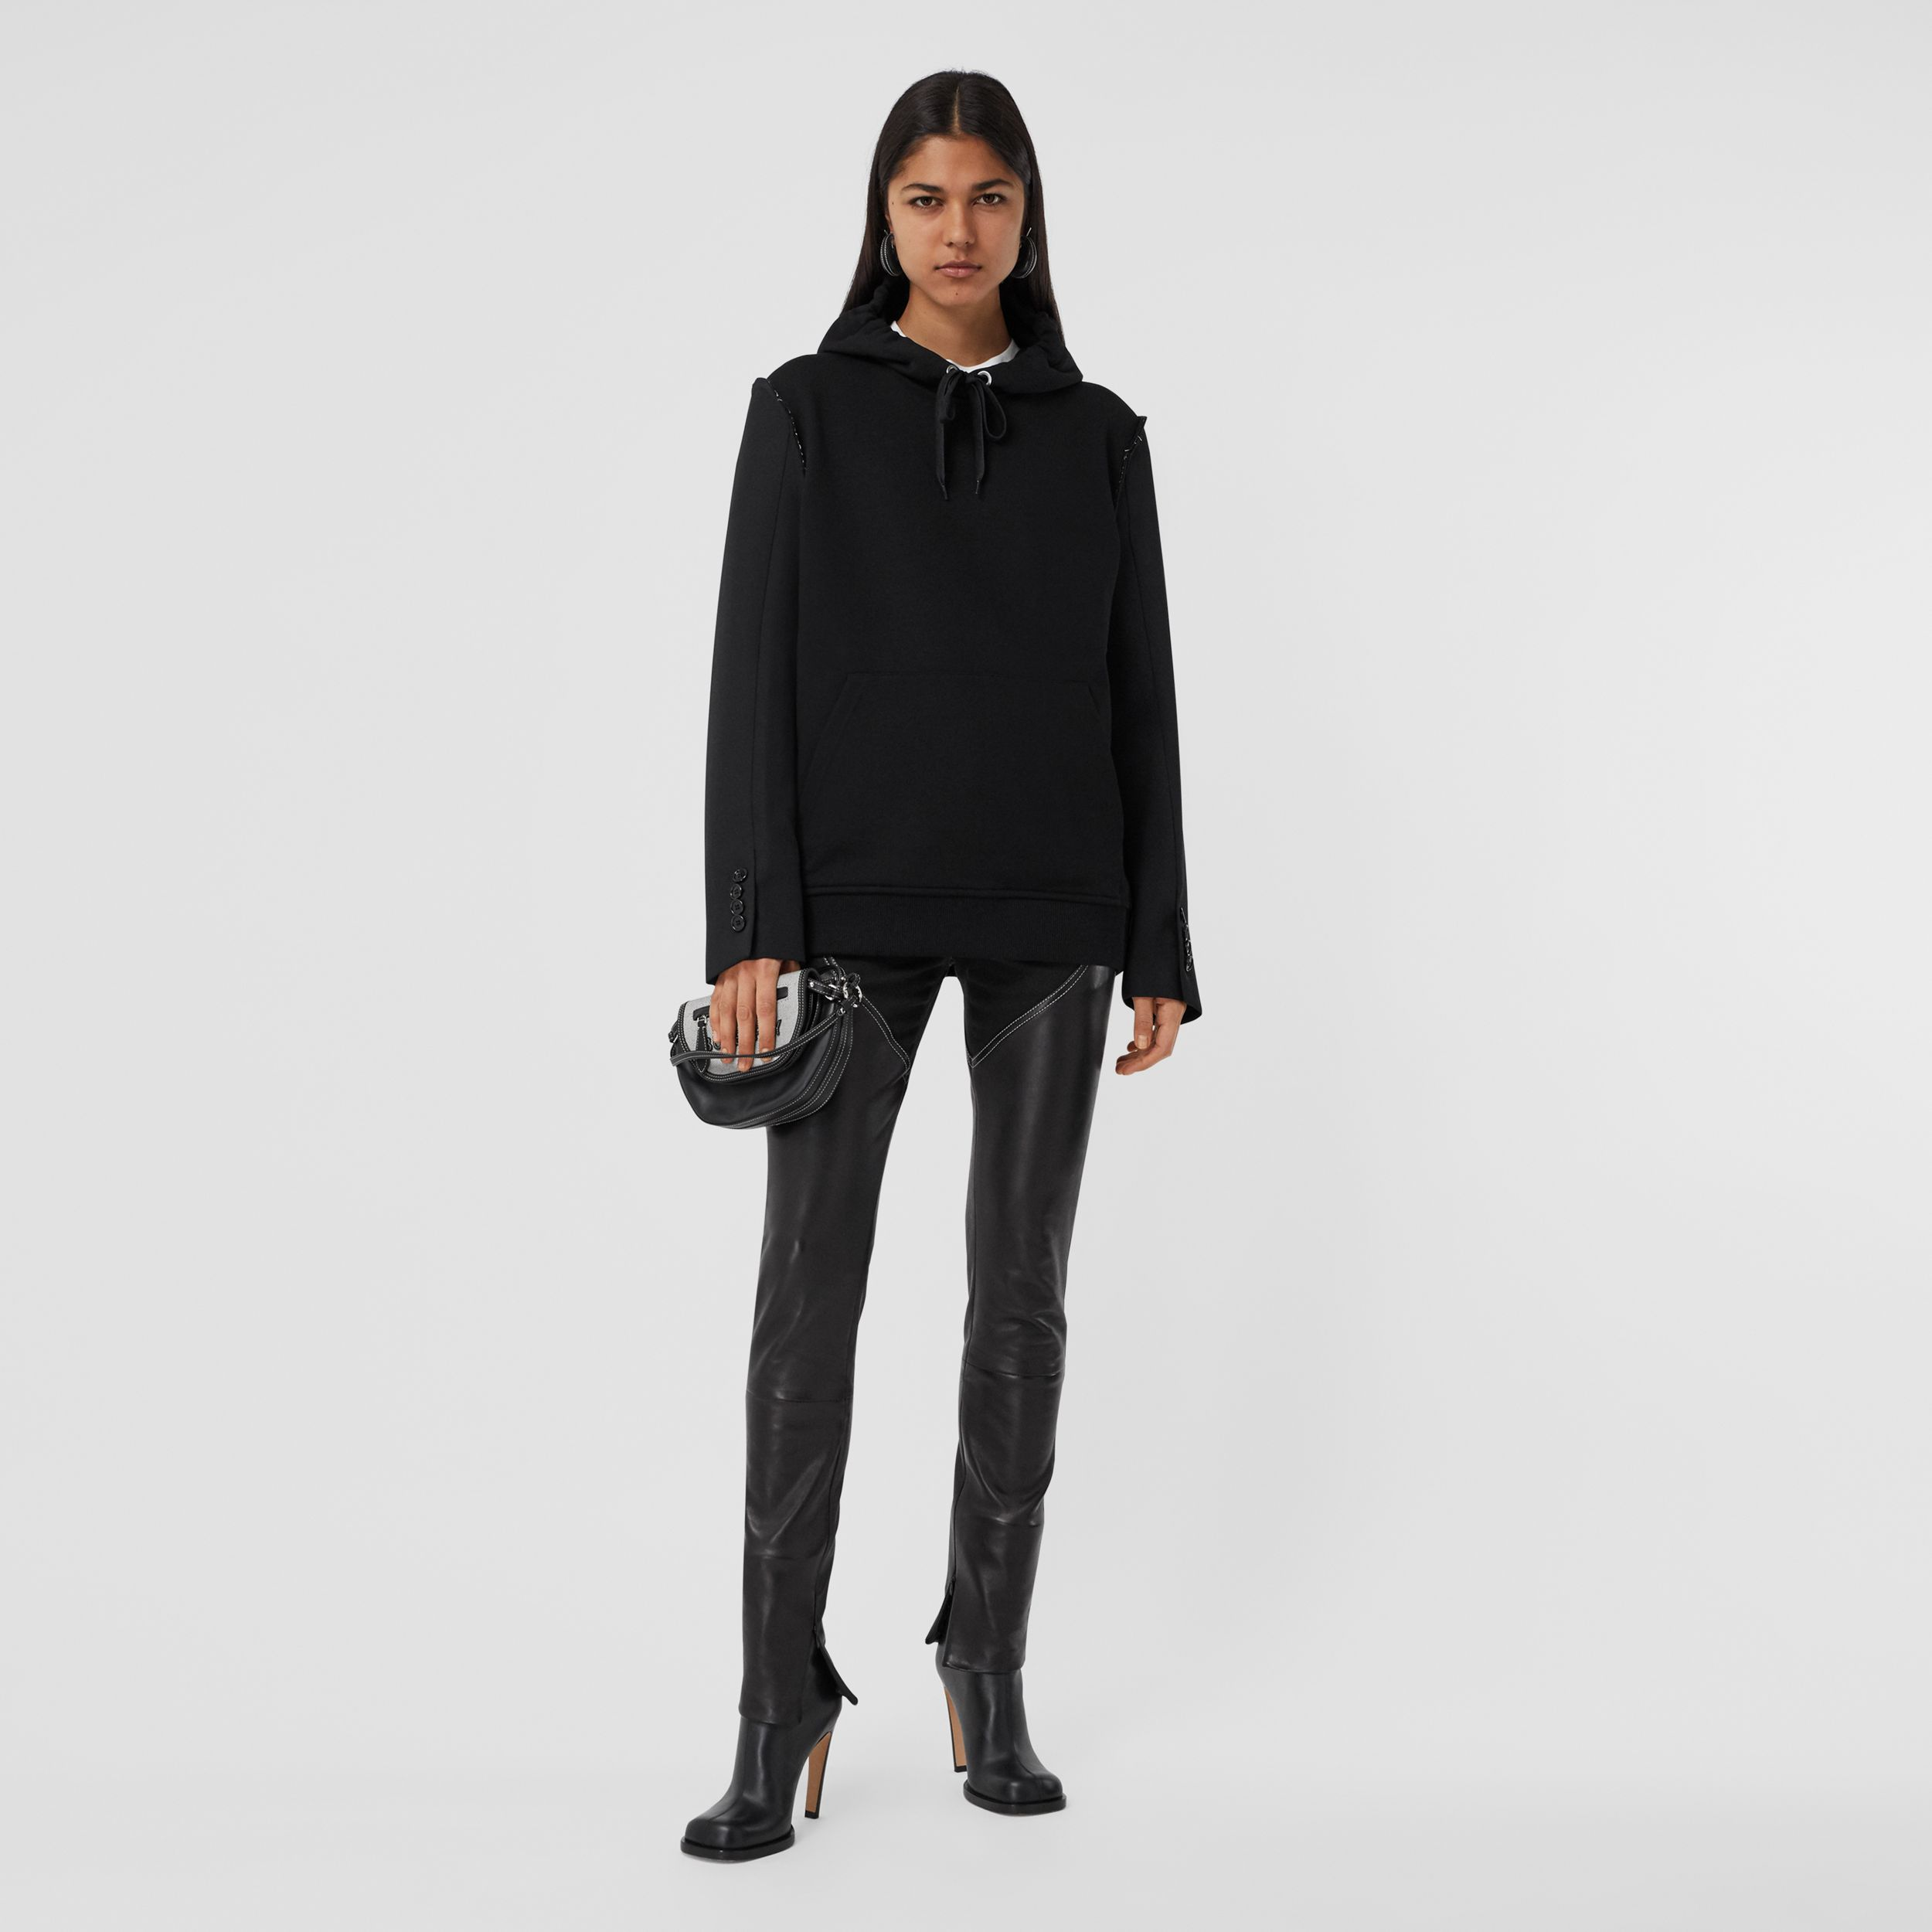 Cotton and Wool Reconstructed Oversized Hoodie in Black - Women | Burberry - 1